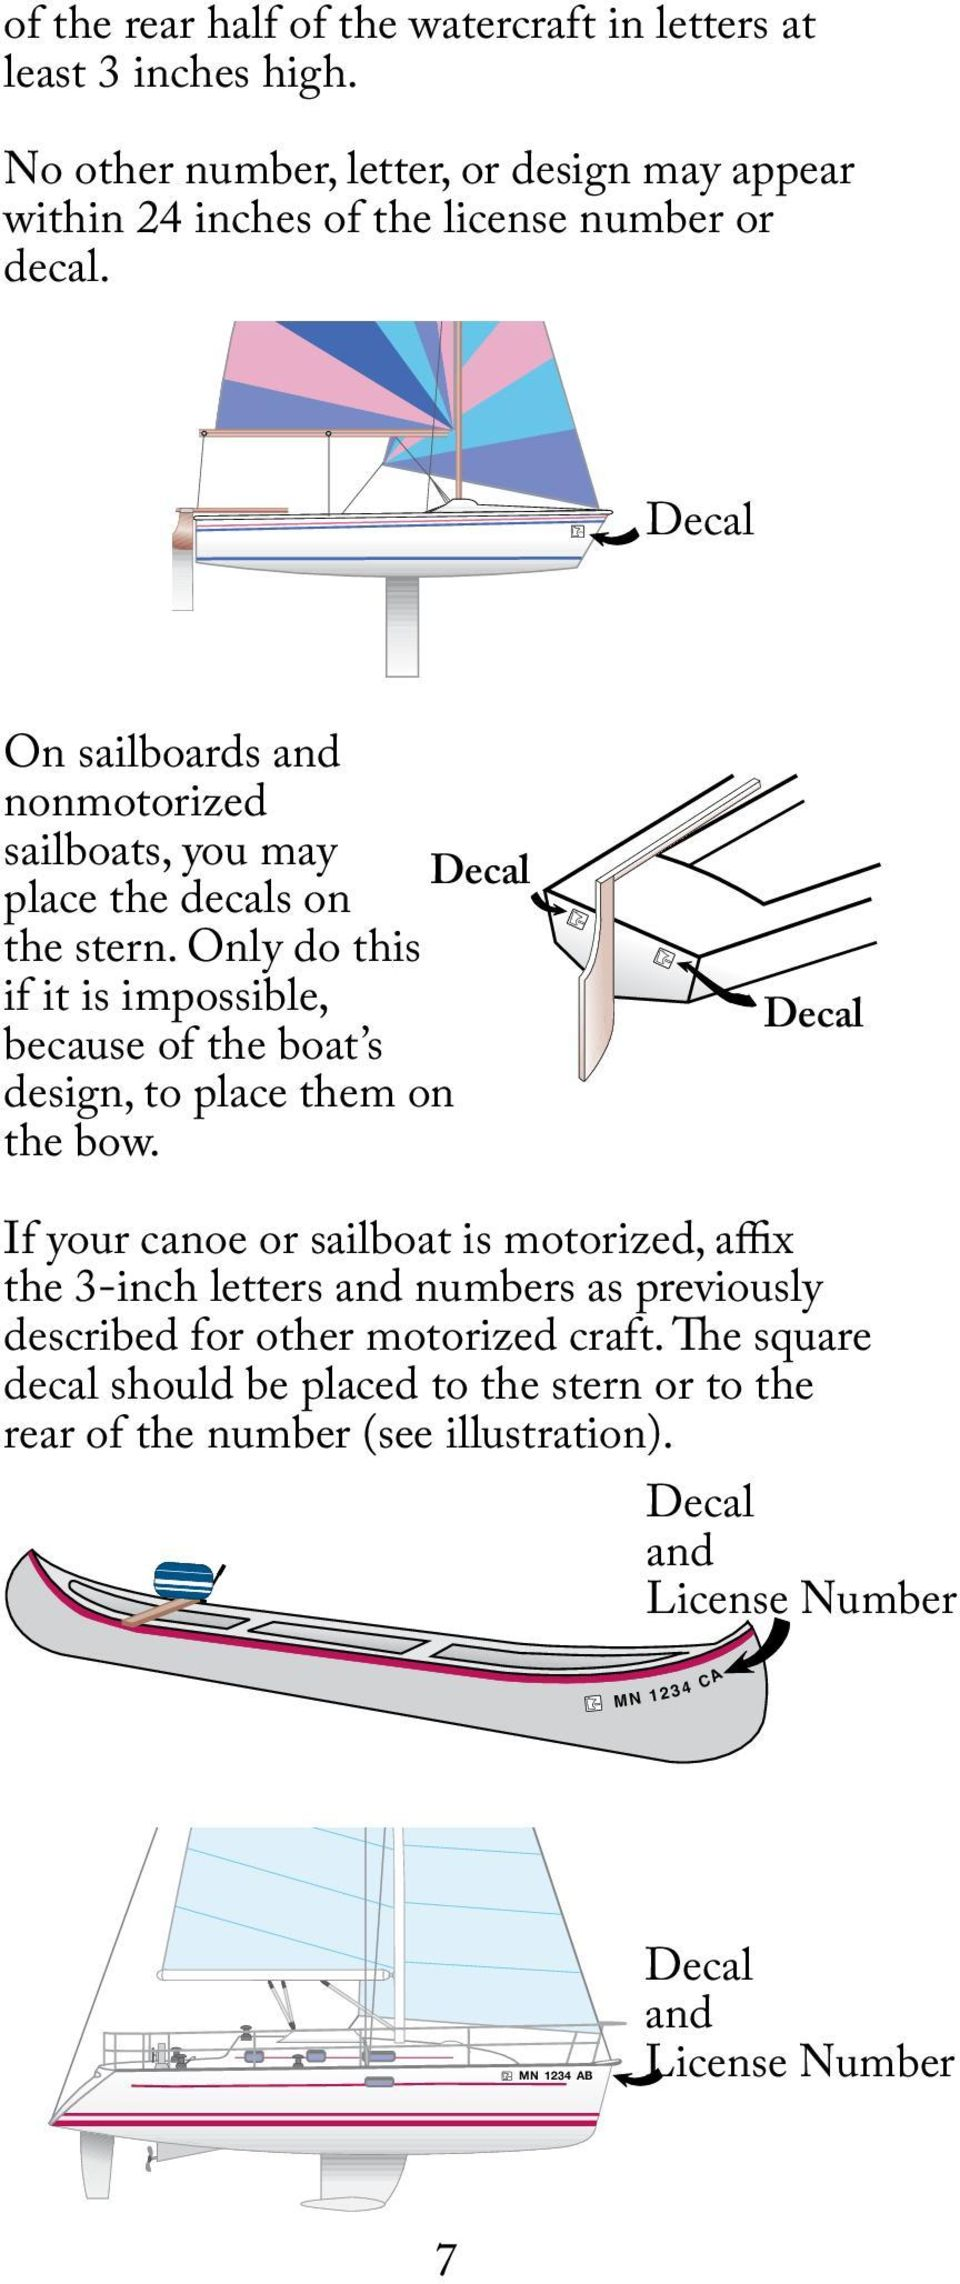 Decal On sailboards and nonmotorized sailboats, you may Decal place the decals on the stern.